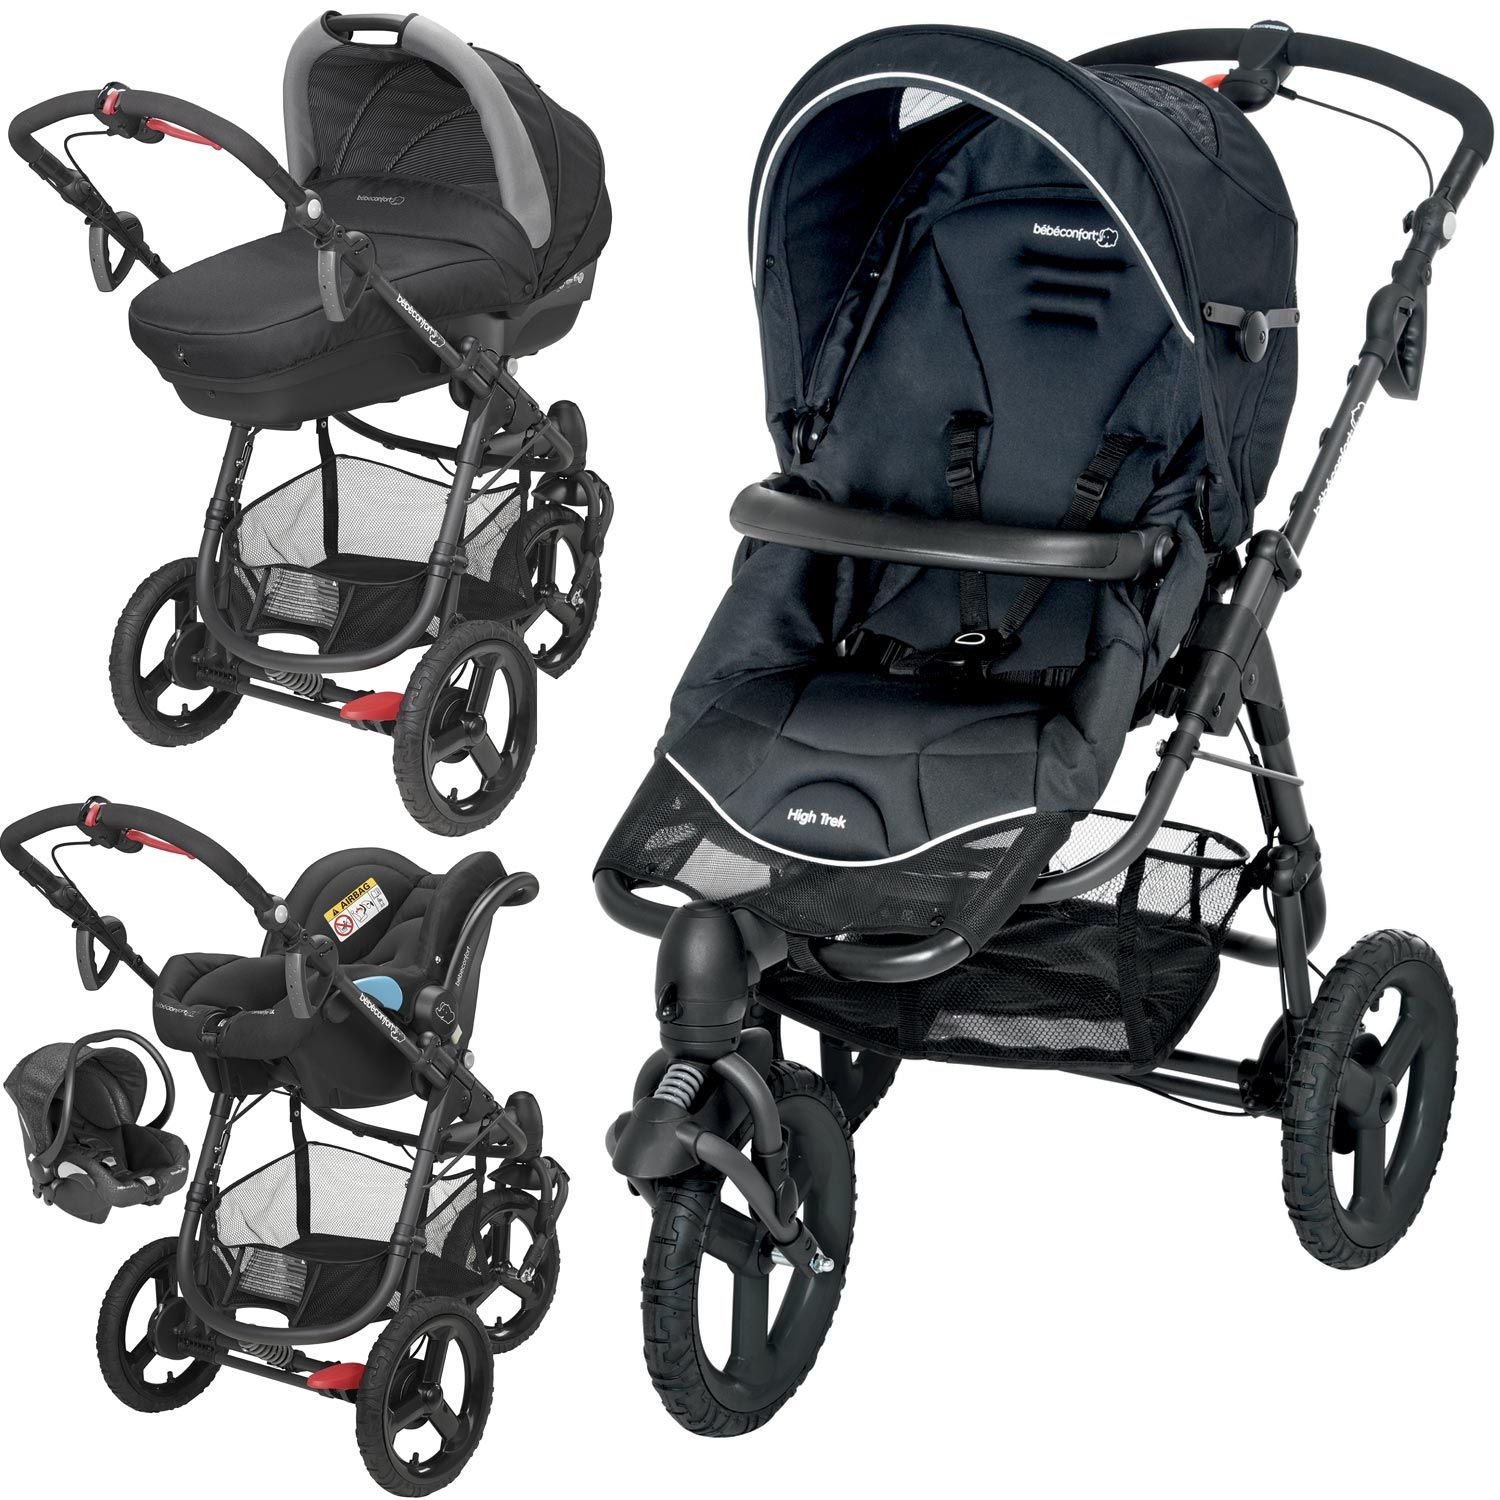 b b confort high trek baby equipment stroller. Black Bedroom Furniture Sets. Home Design Ideas